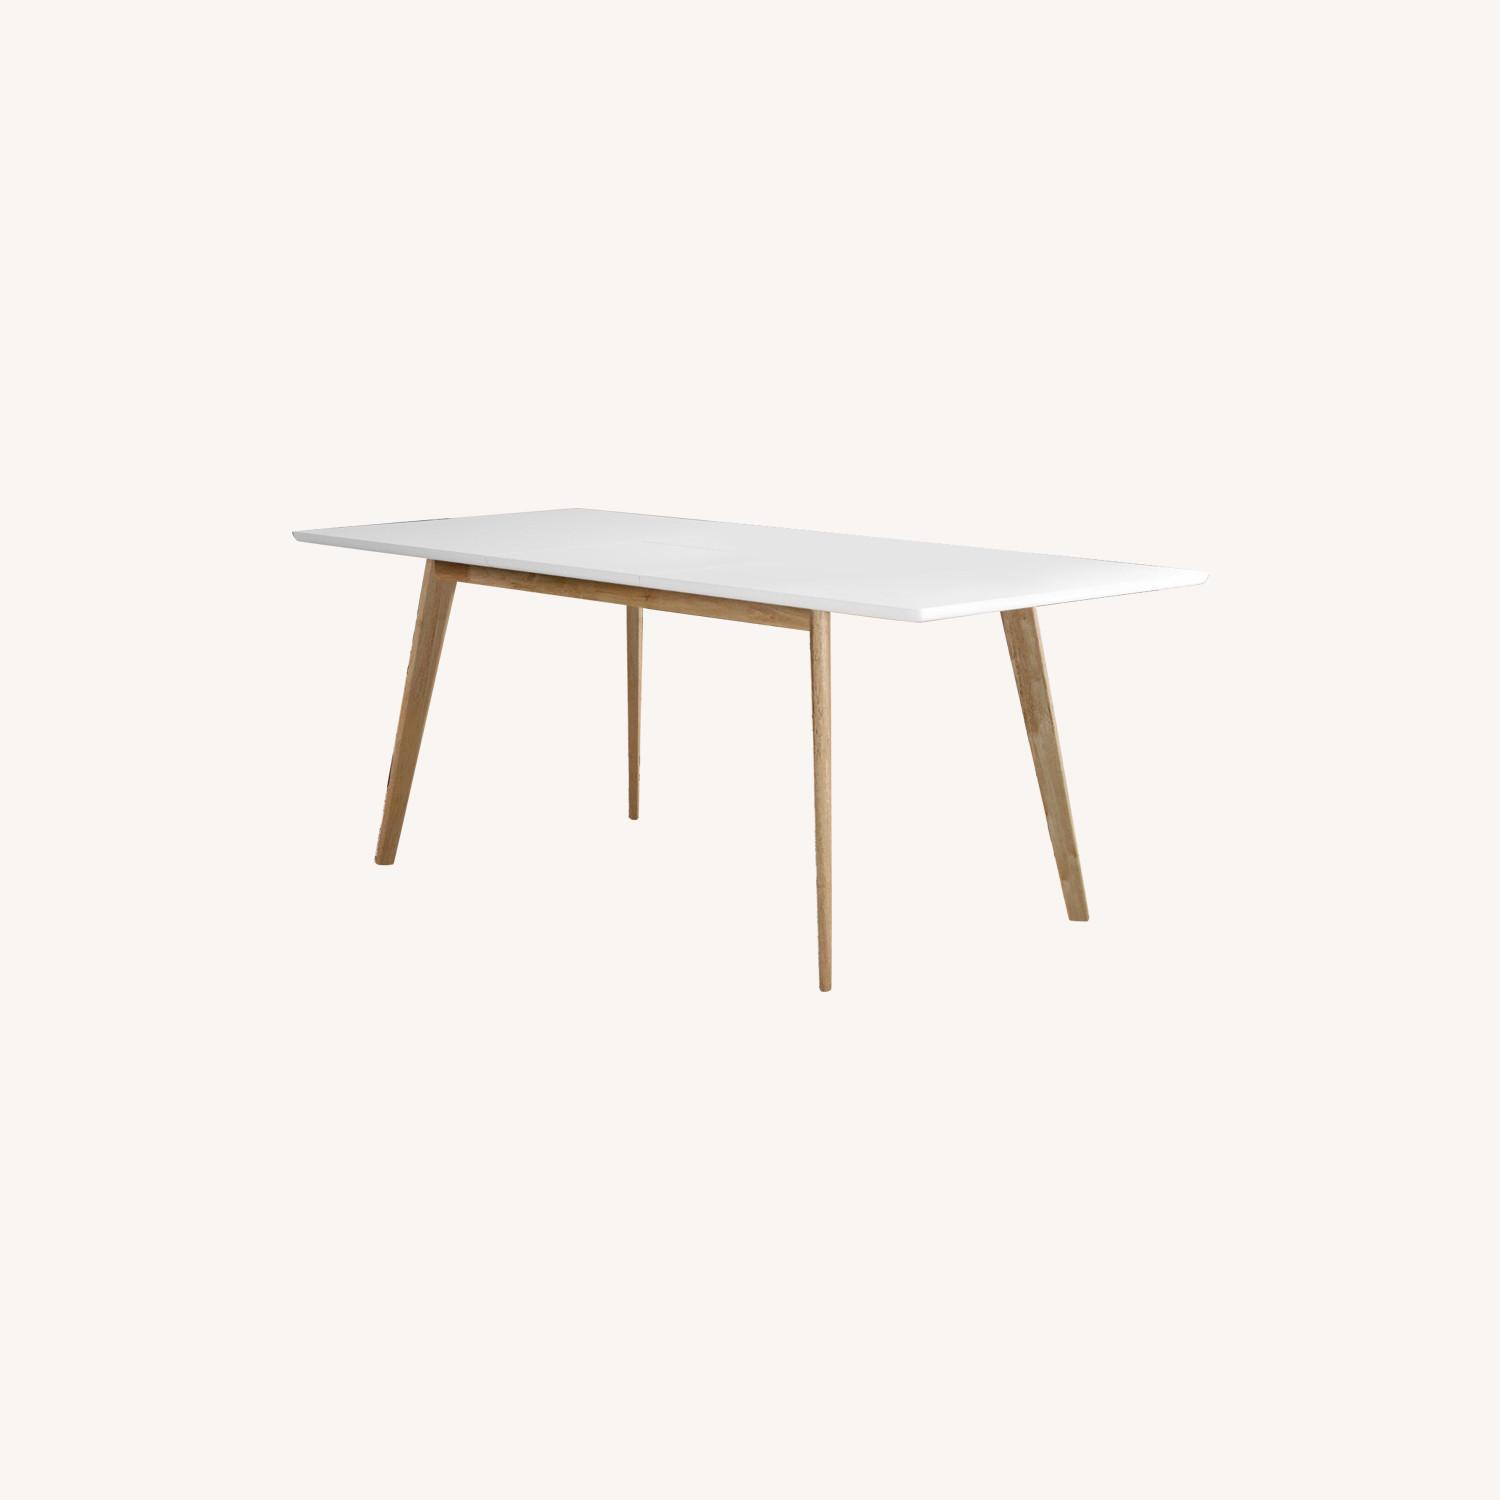 Wayfair Charming White All Modern Extendable Dining Table - image-0